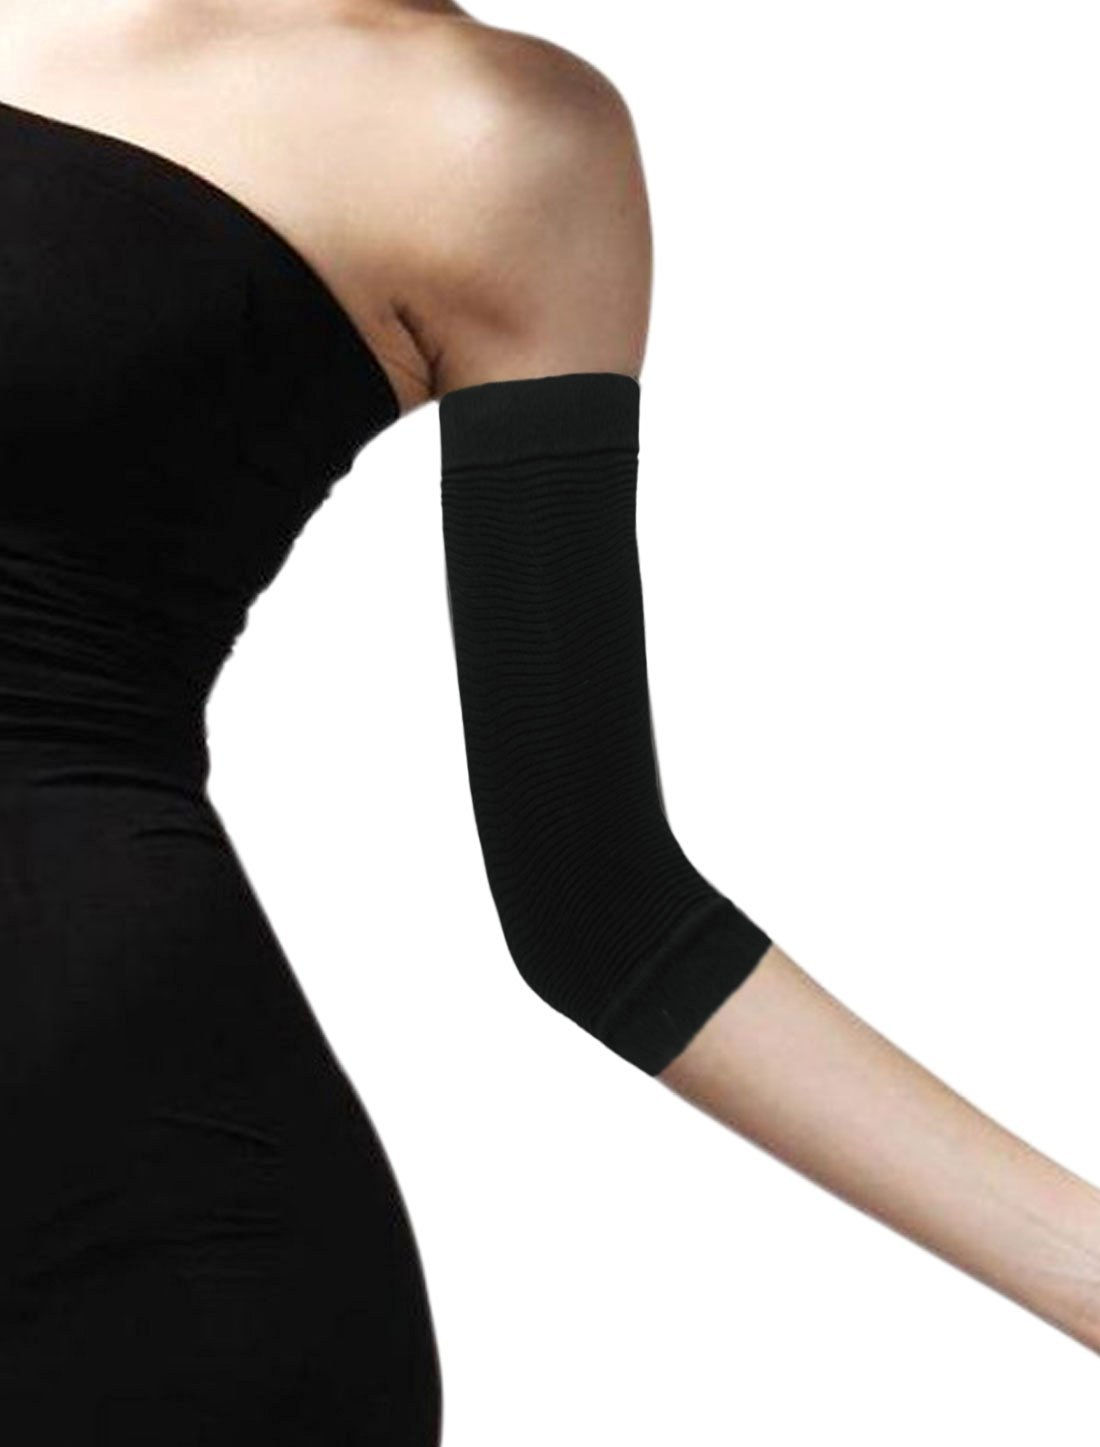 9b6546470e Get Quotations · uxcell Women Zig Zag Design Stretchy Compression Arm  Sleeves Black